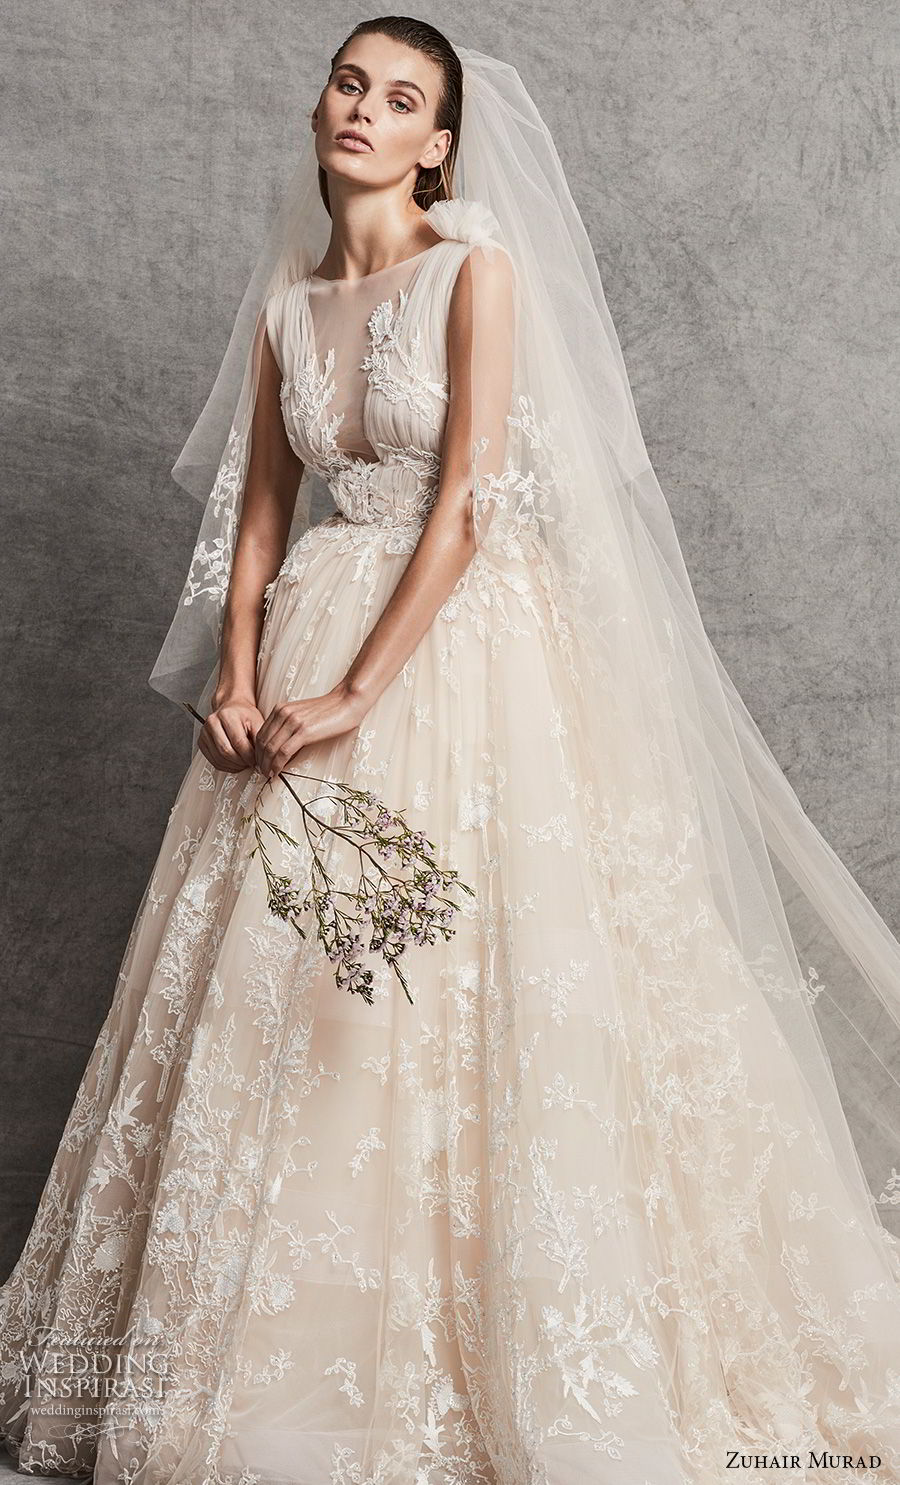 zuhair murad fall 2018 bridal sleeveless illusion bateau v meck full embellishment romantic ivory ball gown wedding dress chapel train (14) mv